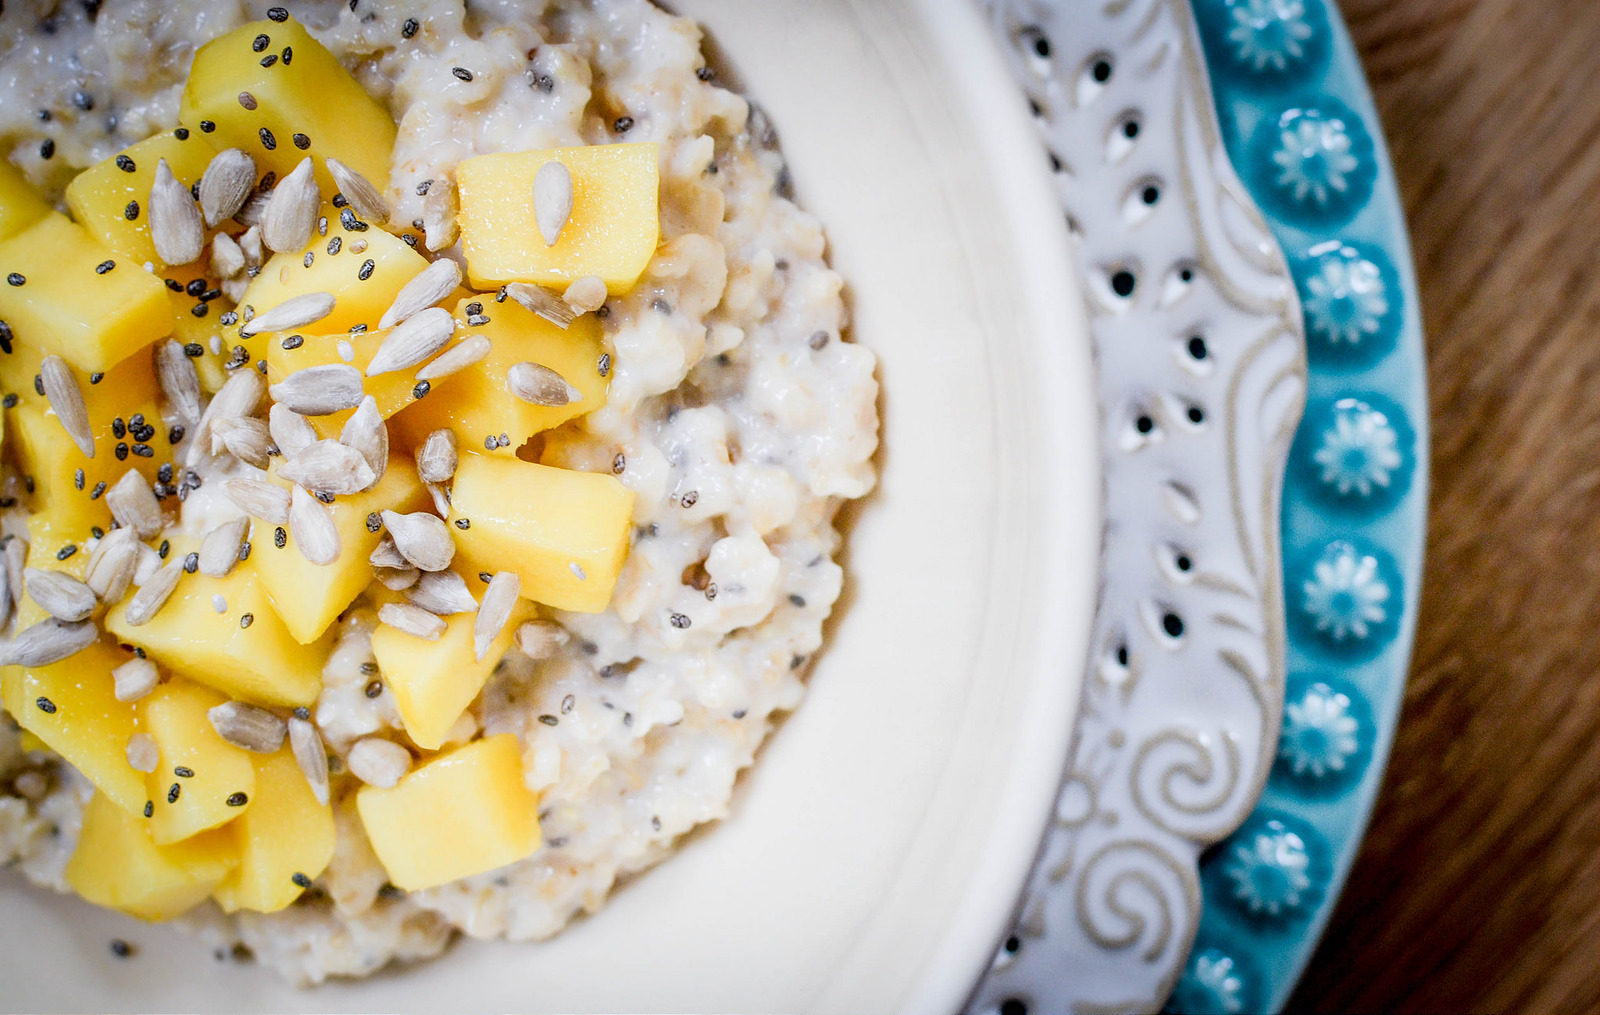 stoats porridge with mangoes, sunflower seeds and a drizzle of orange olive oil